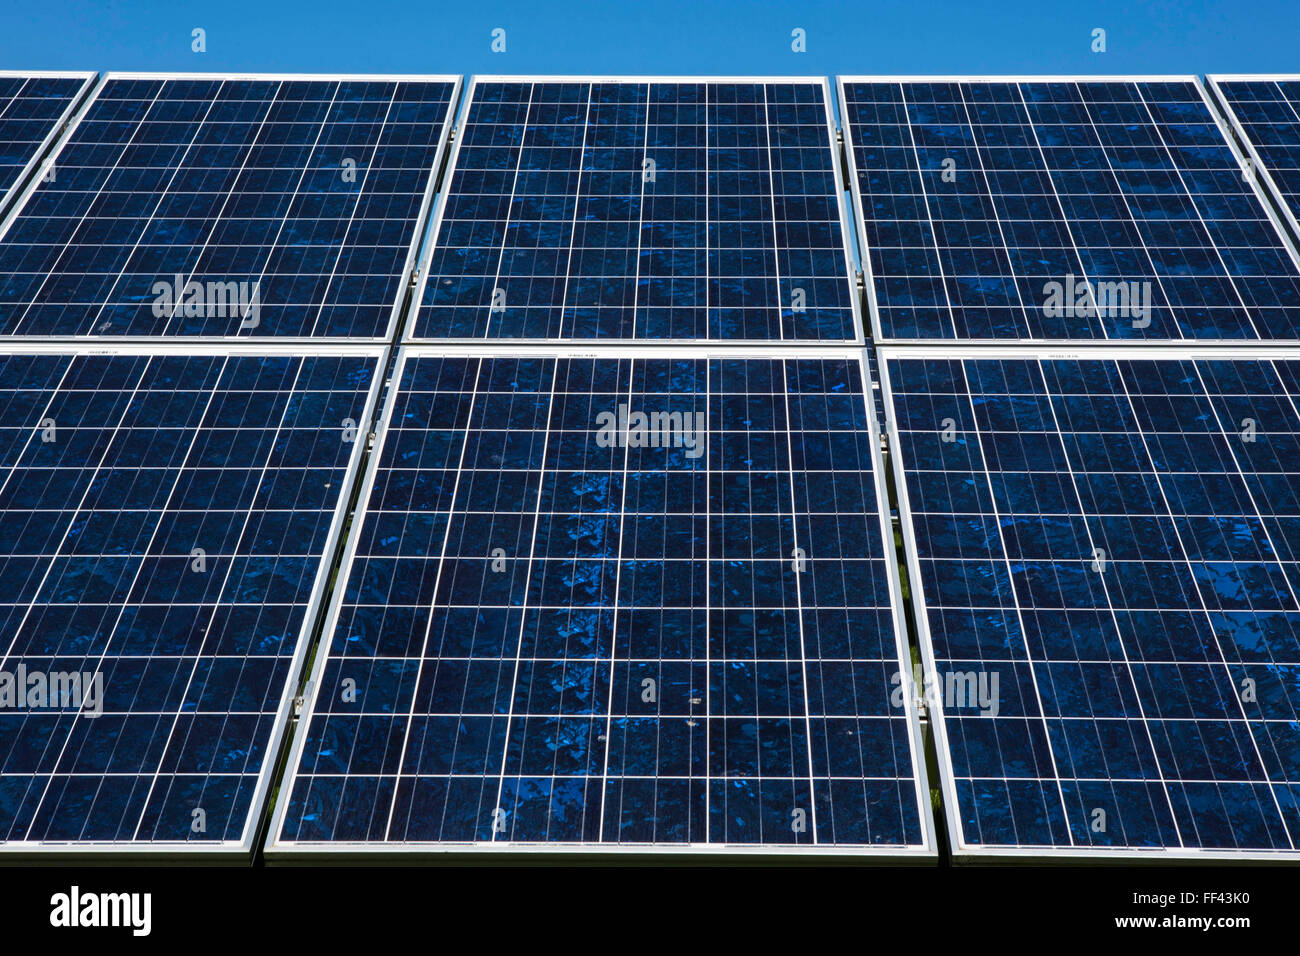 Rows of photovoltaic solar panels in a field for electricity production. Renewable energy in Wadebridge, Cornwall, - Stock Image